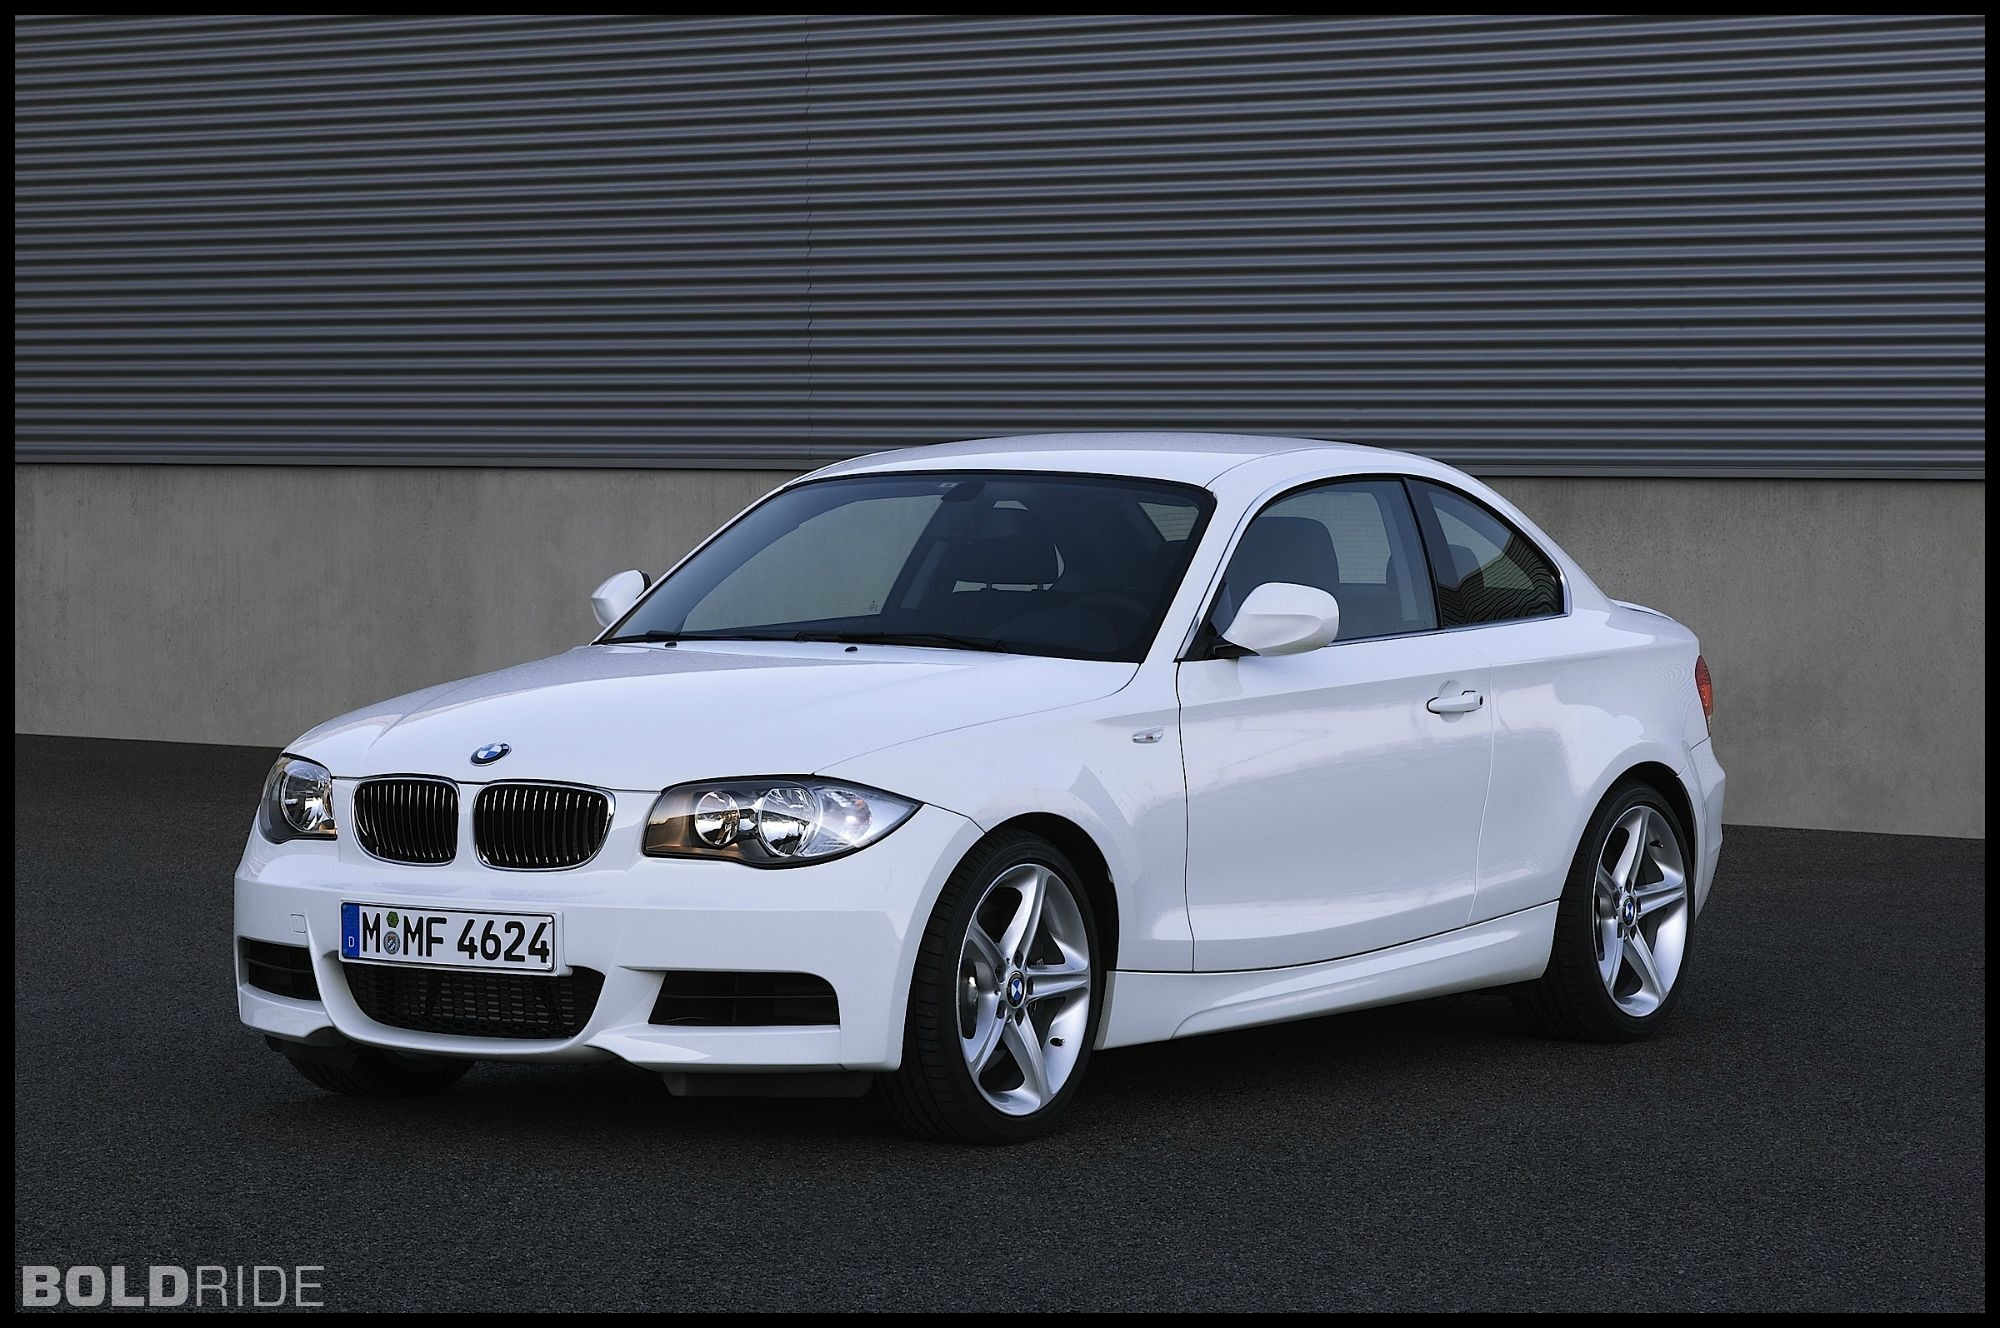 Bmw 135i Insurance Group Unique Bmw 135i Coupe